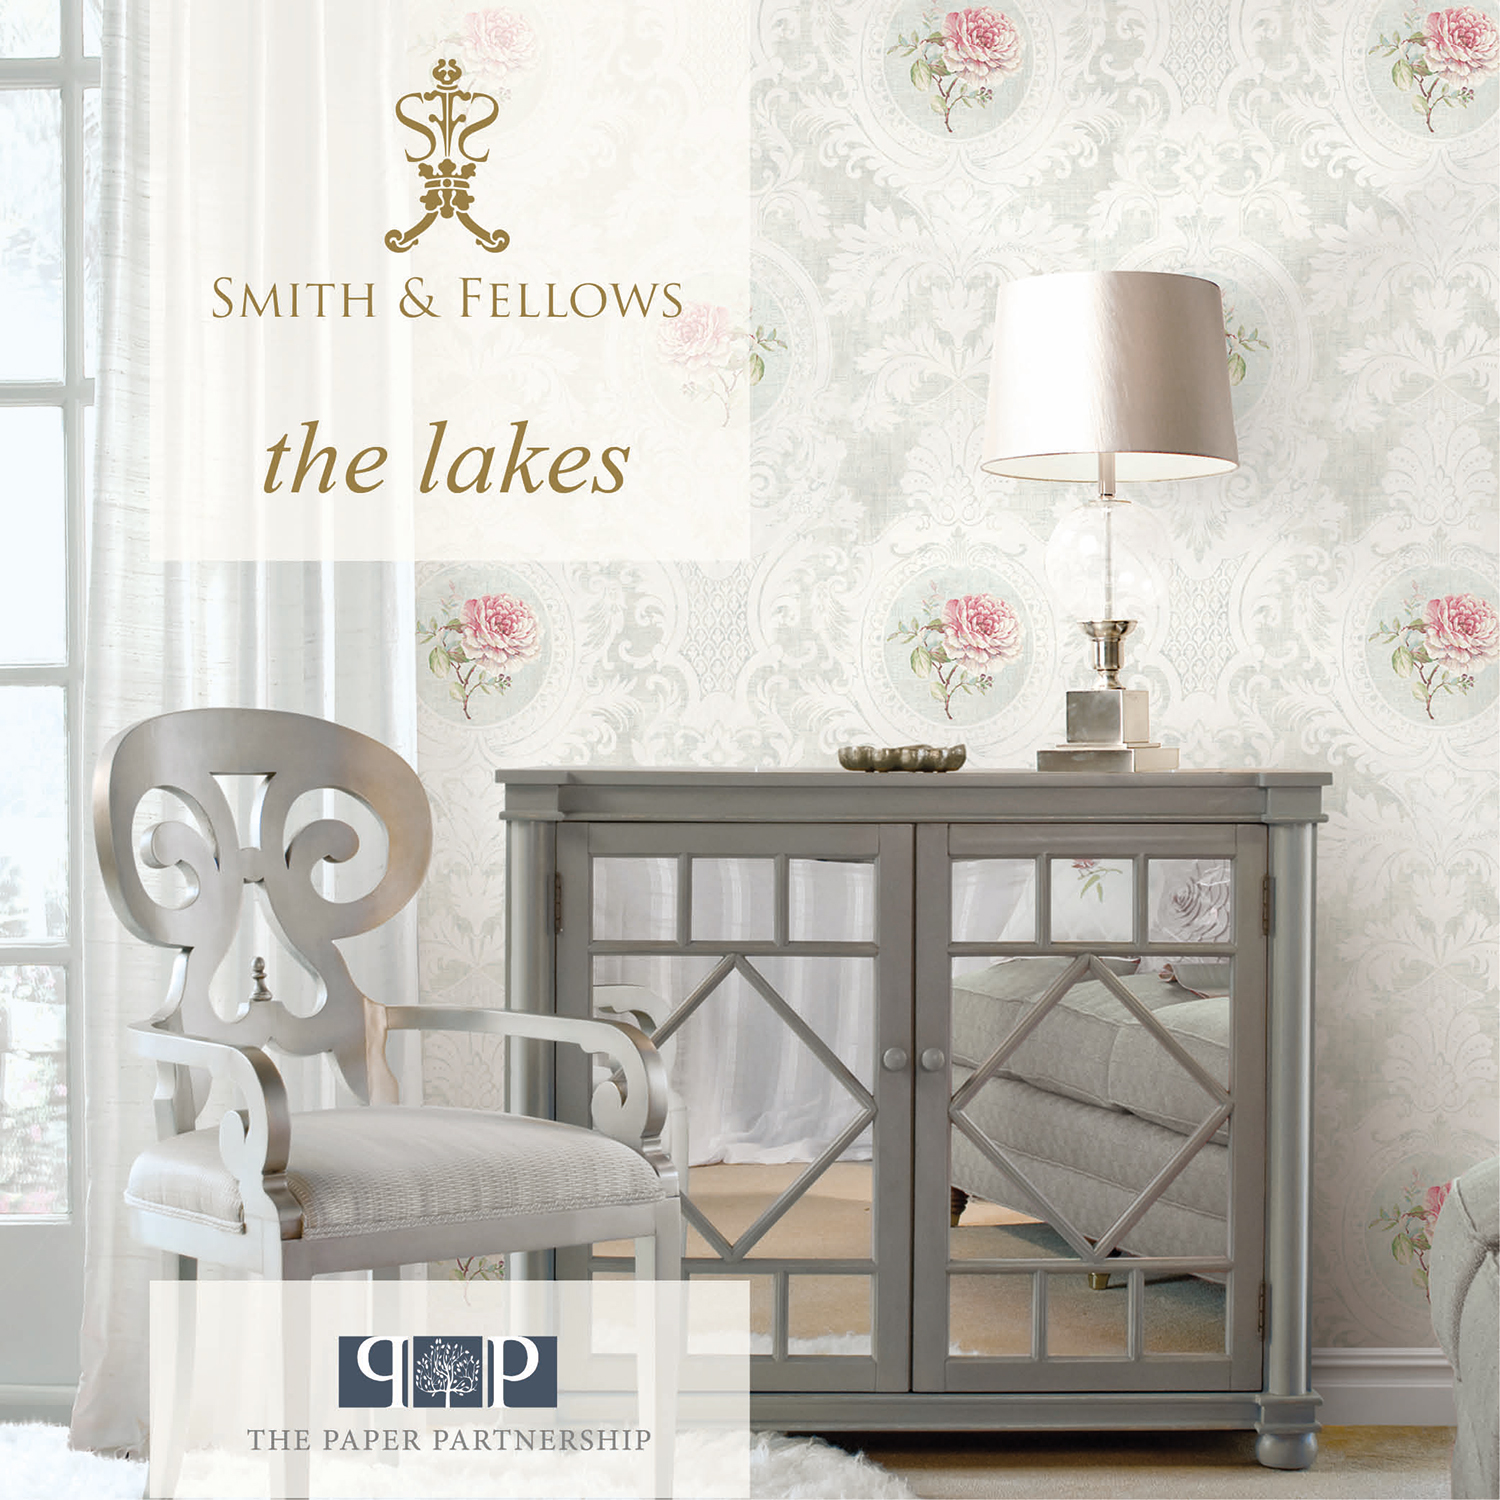 New Collection: the lakes from Smith & Fellows